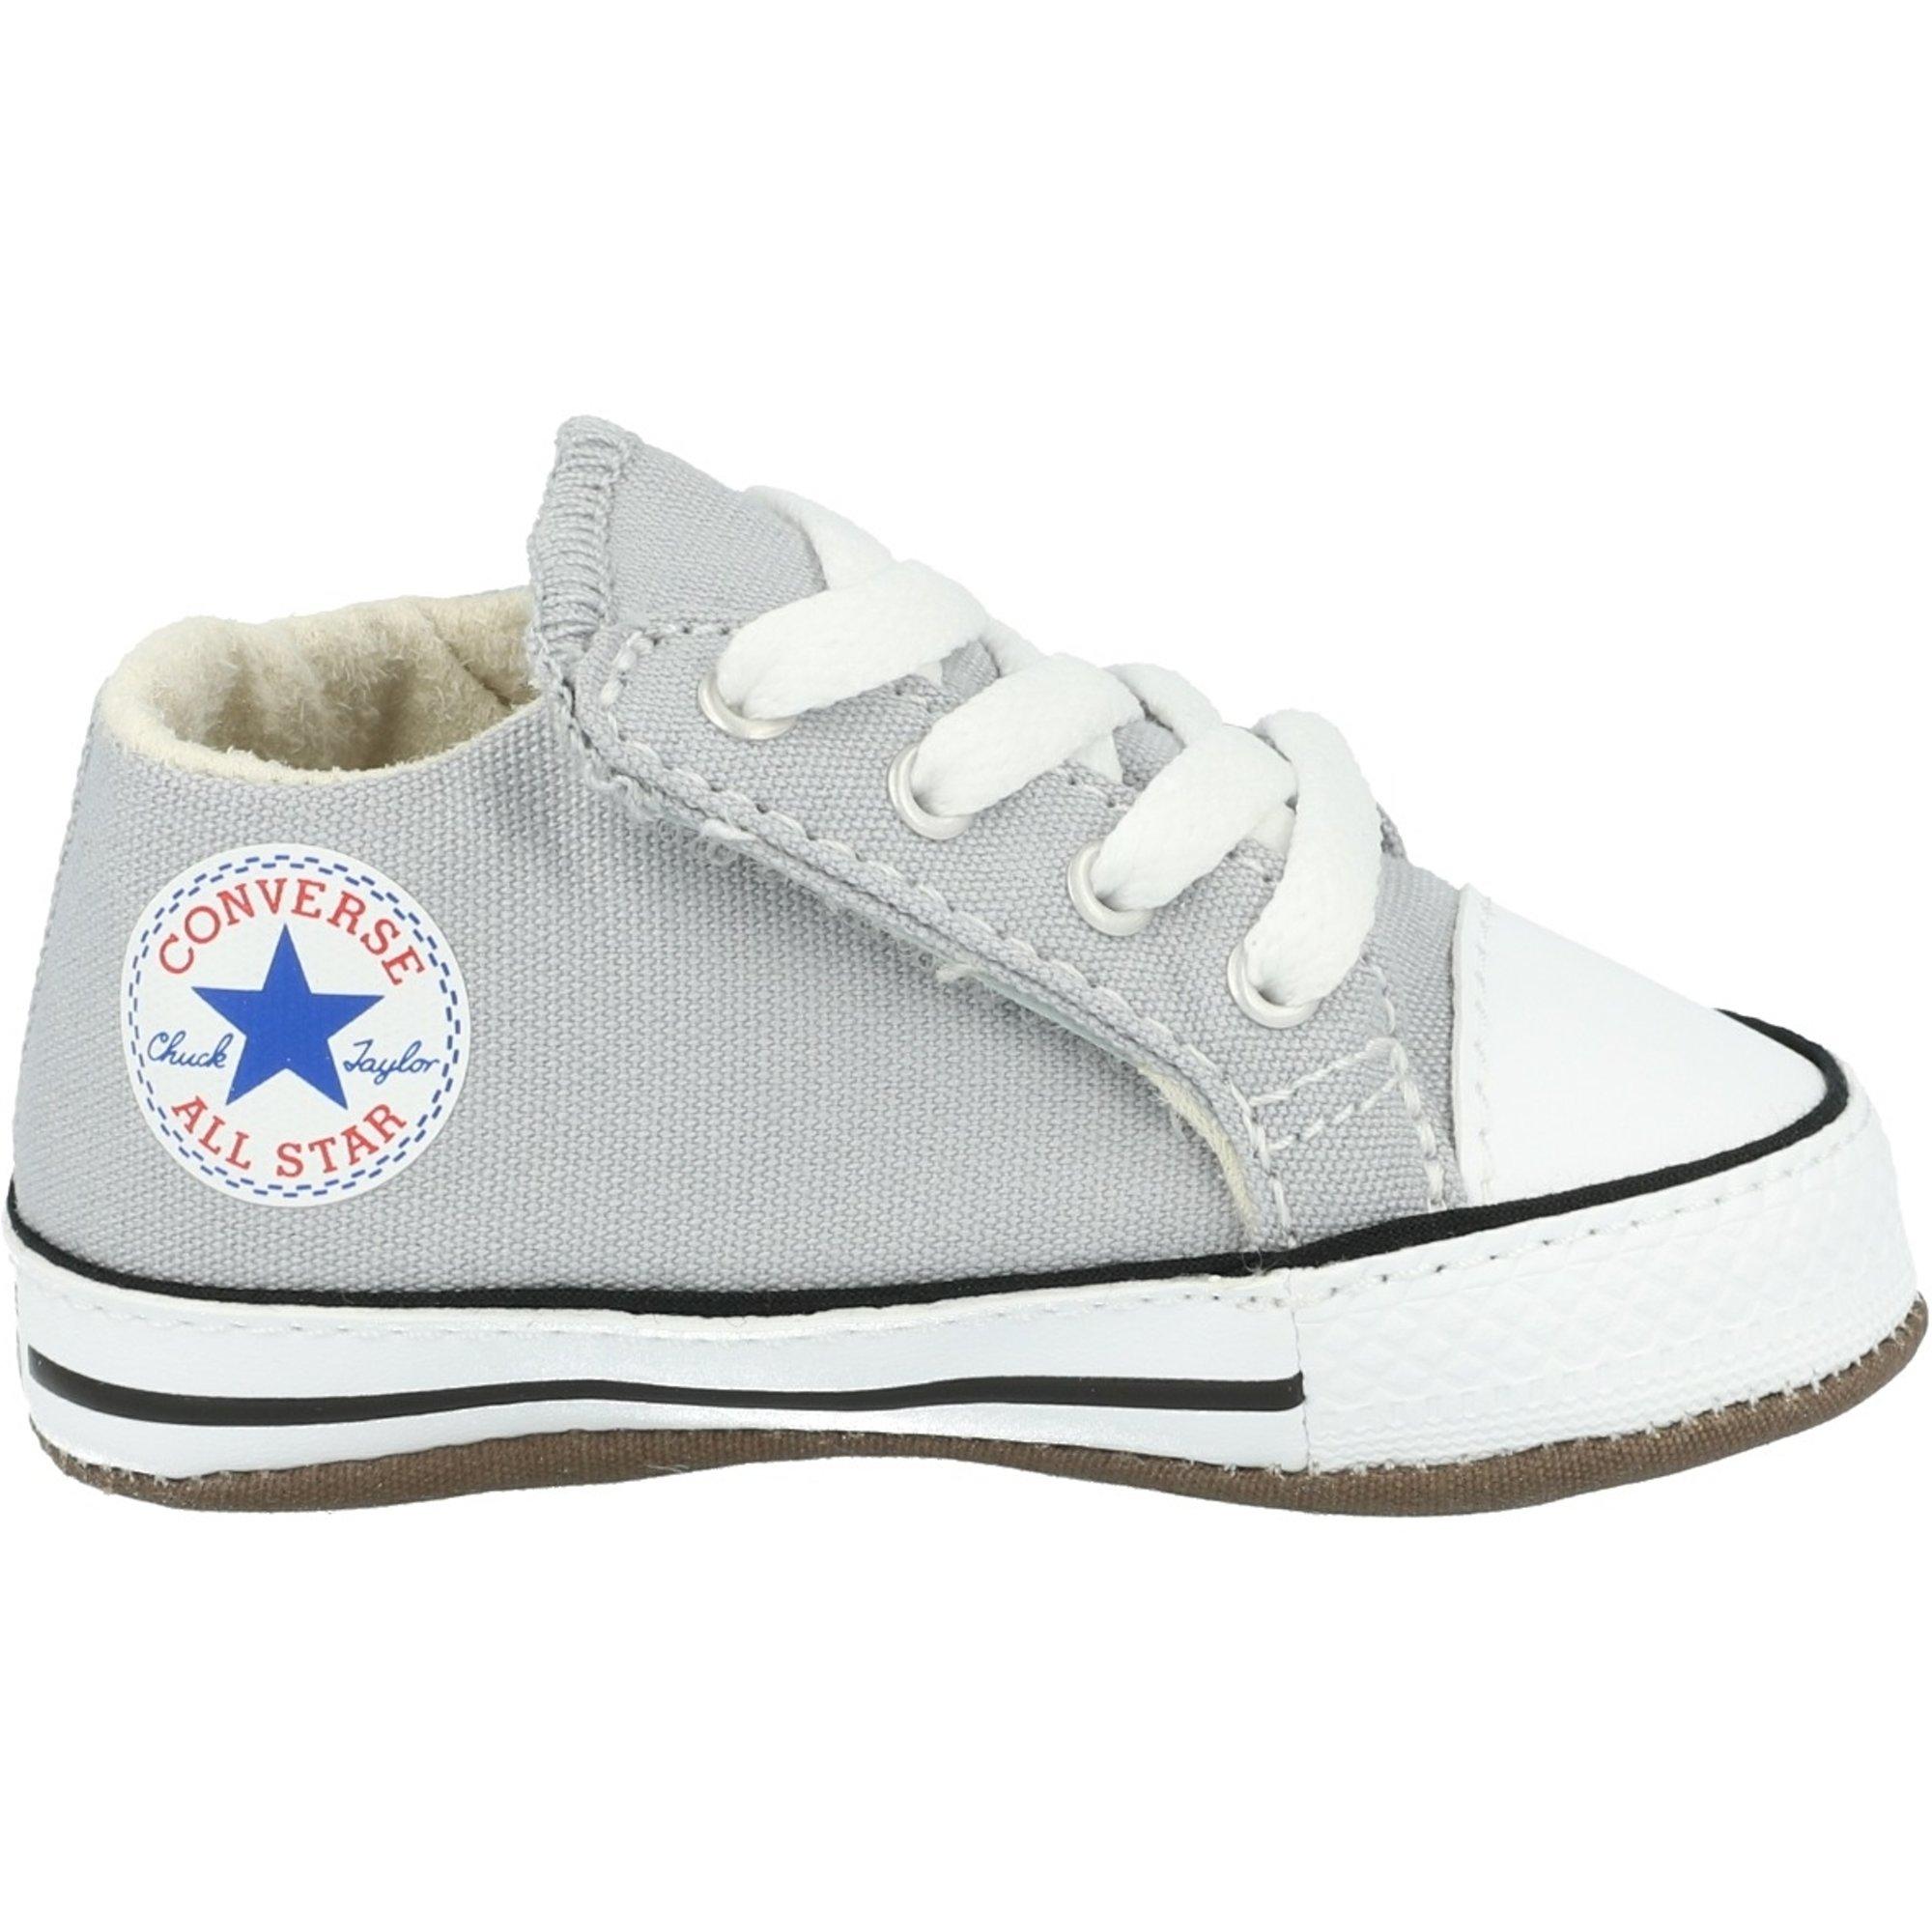 Converse Chuck Taylor All Star Cribster Mid Wolf Grey Canvas Baby